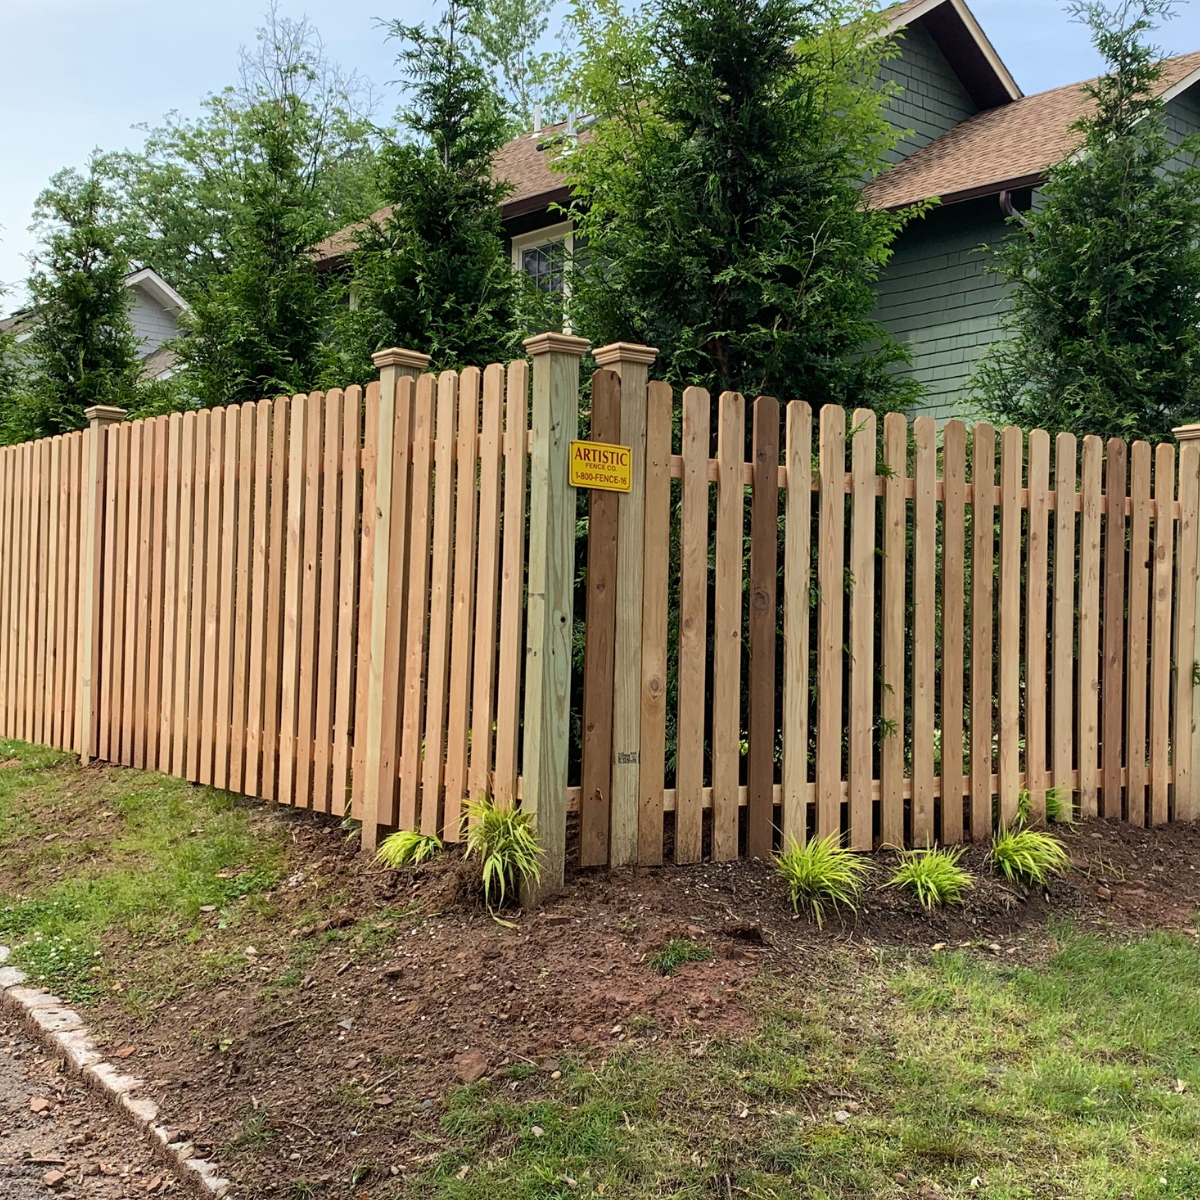 Wood fence installation in Montclair, New Jersey installed by Artistic Fence Company